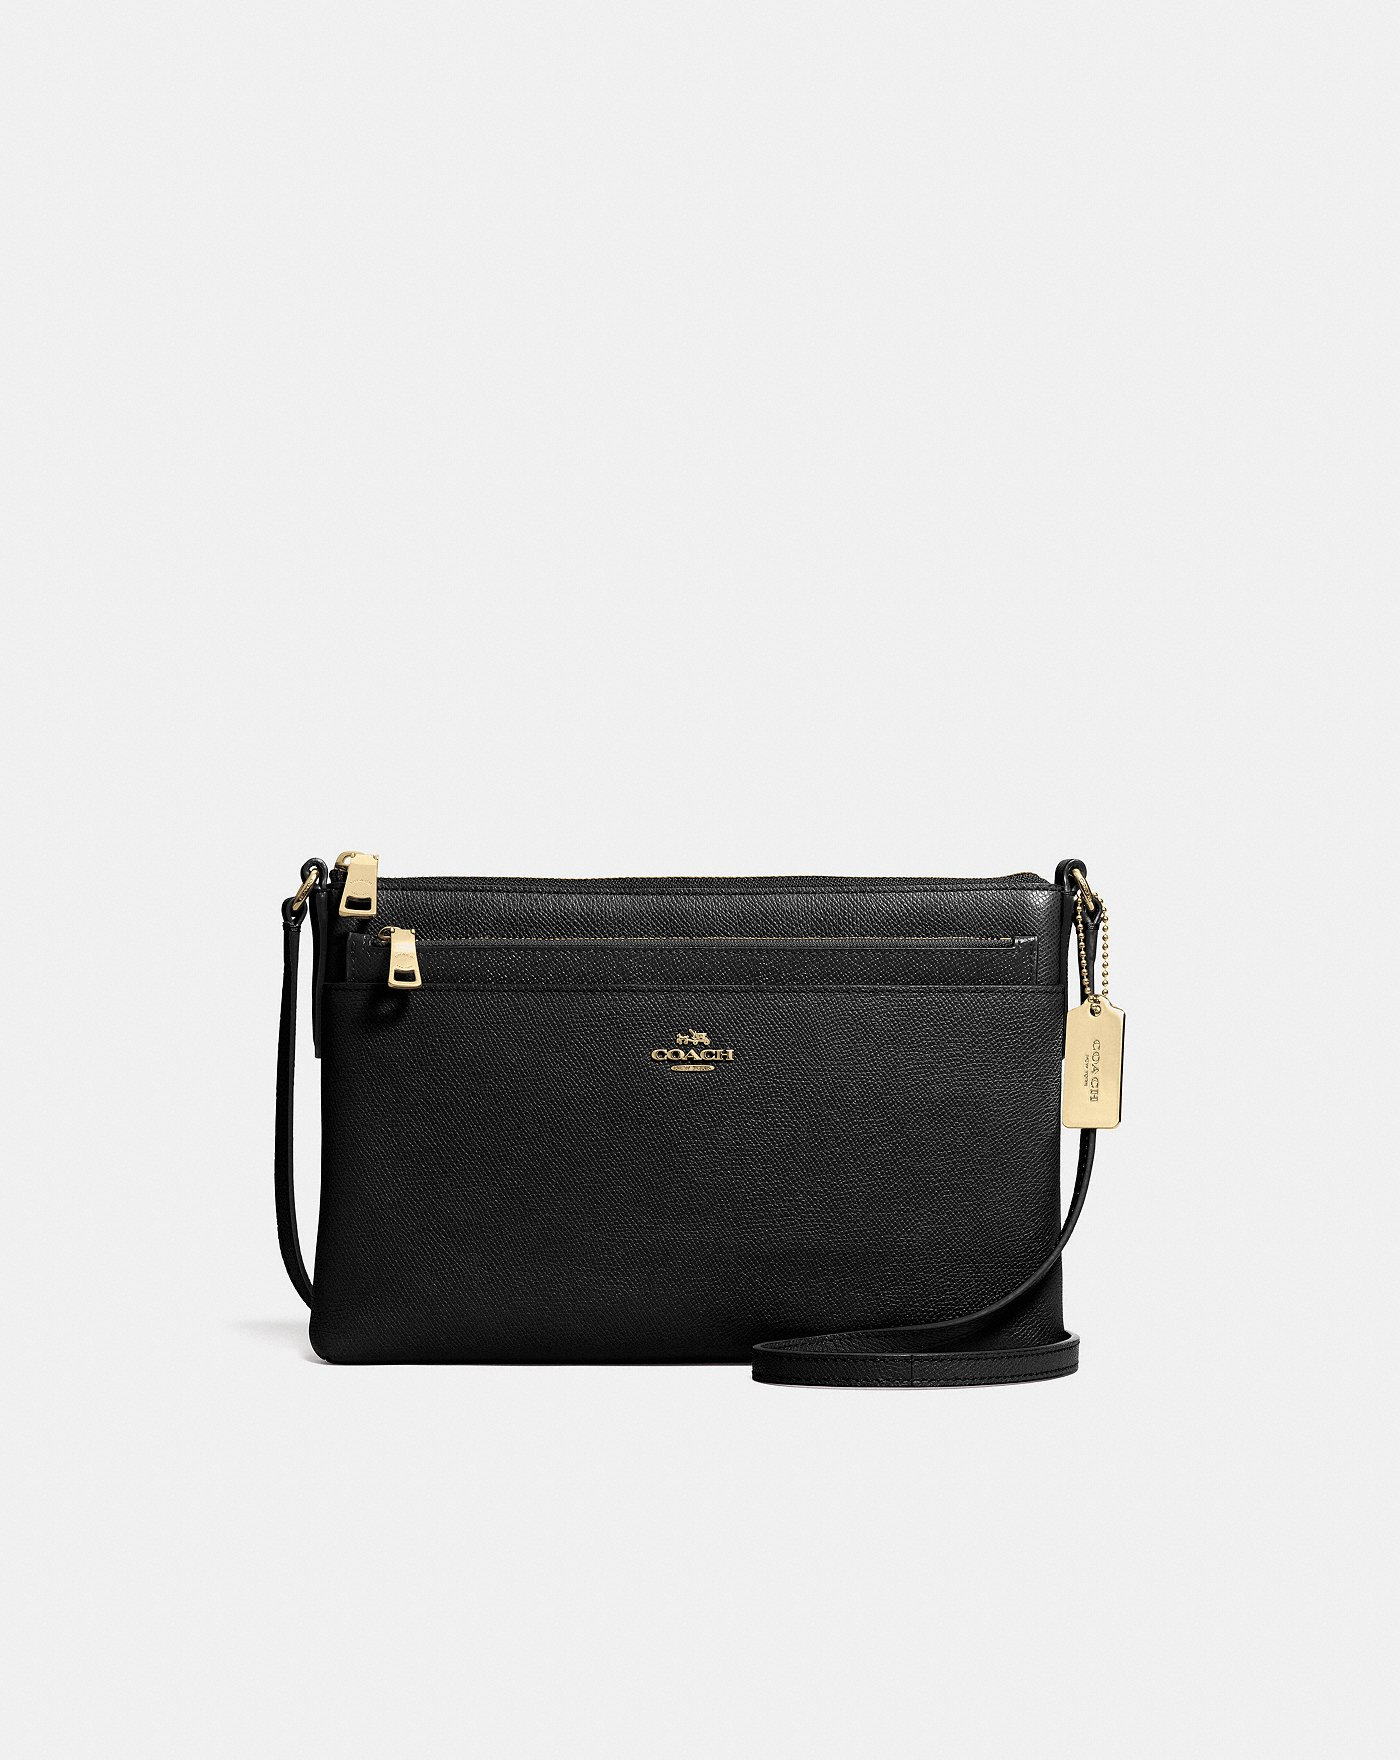 3923d093c78336 Swingpack With Pop-Up Pouch | COACH